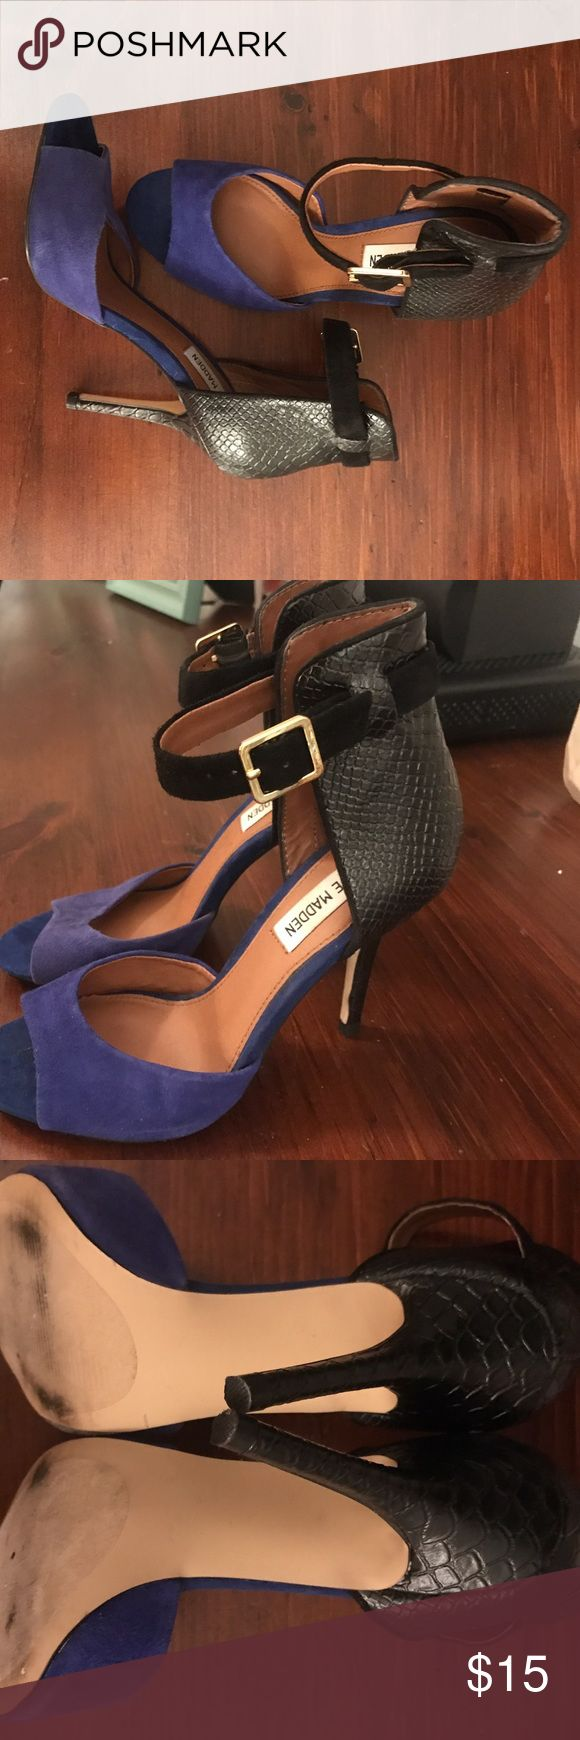 Steve Madden Blue and Black Heels Super cute black ankle strap, great condition, worn twice! Steve Madden! Steve Madden Shoes Heels